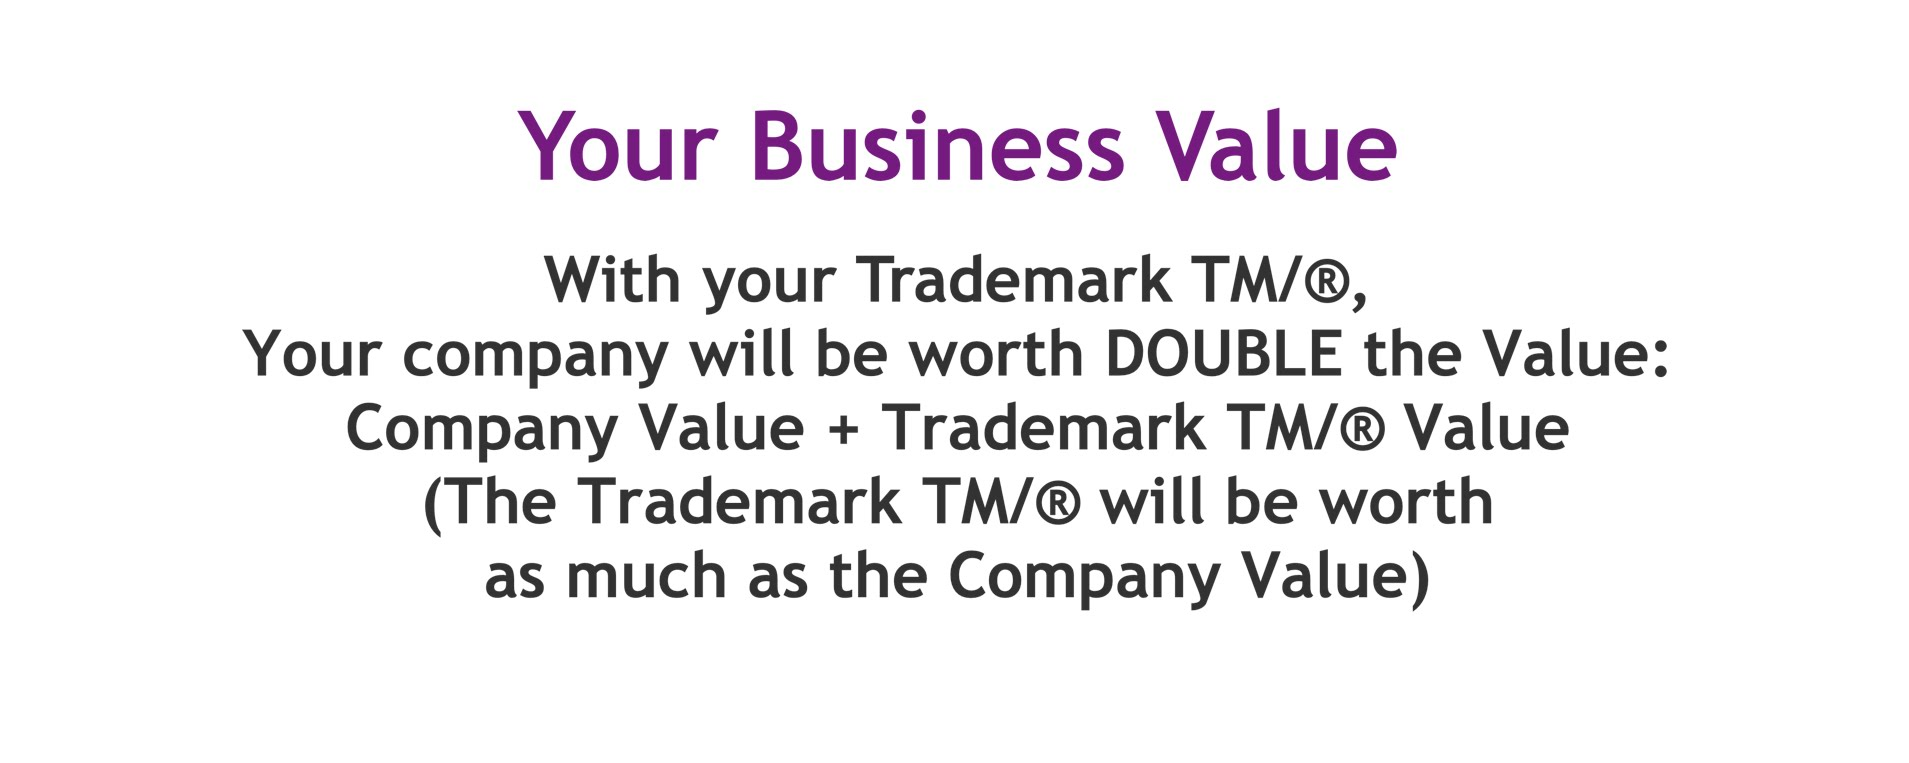 Trademark Value